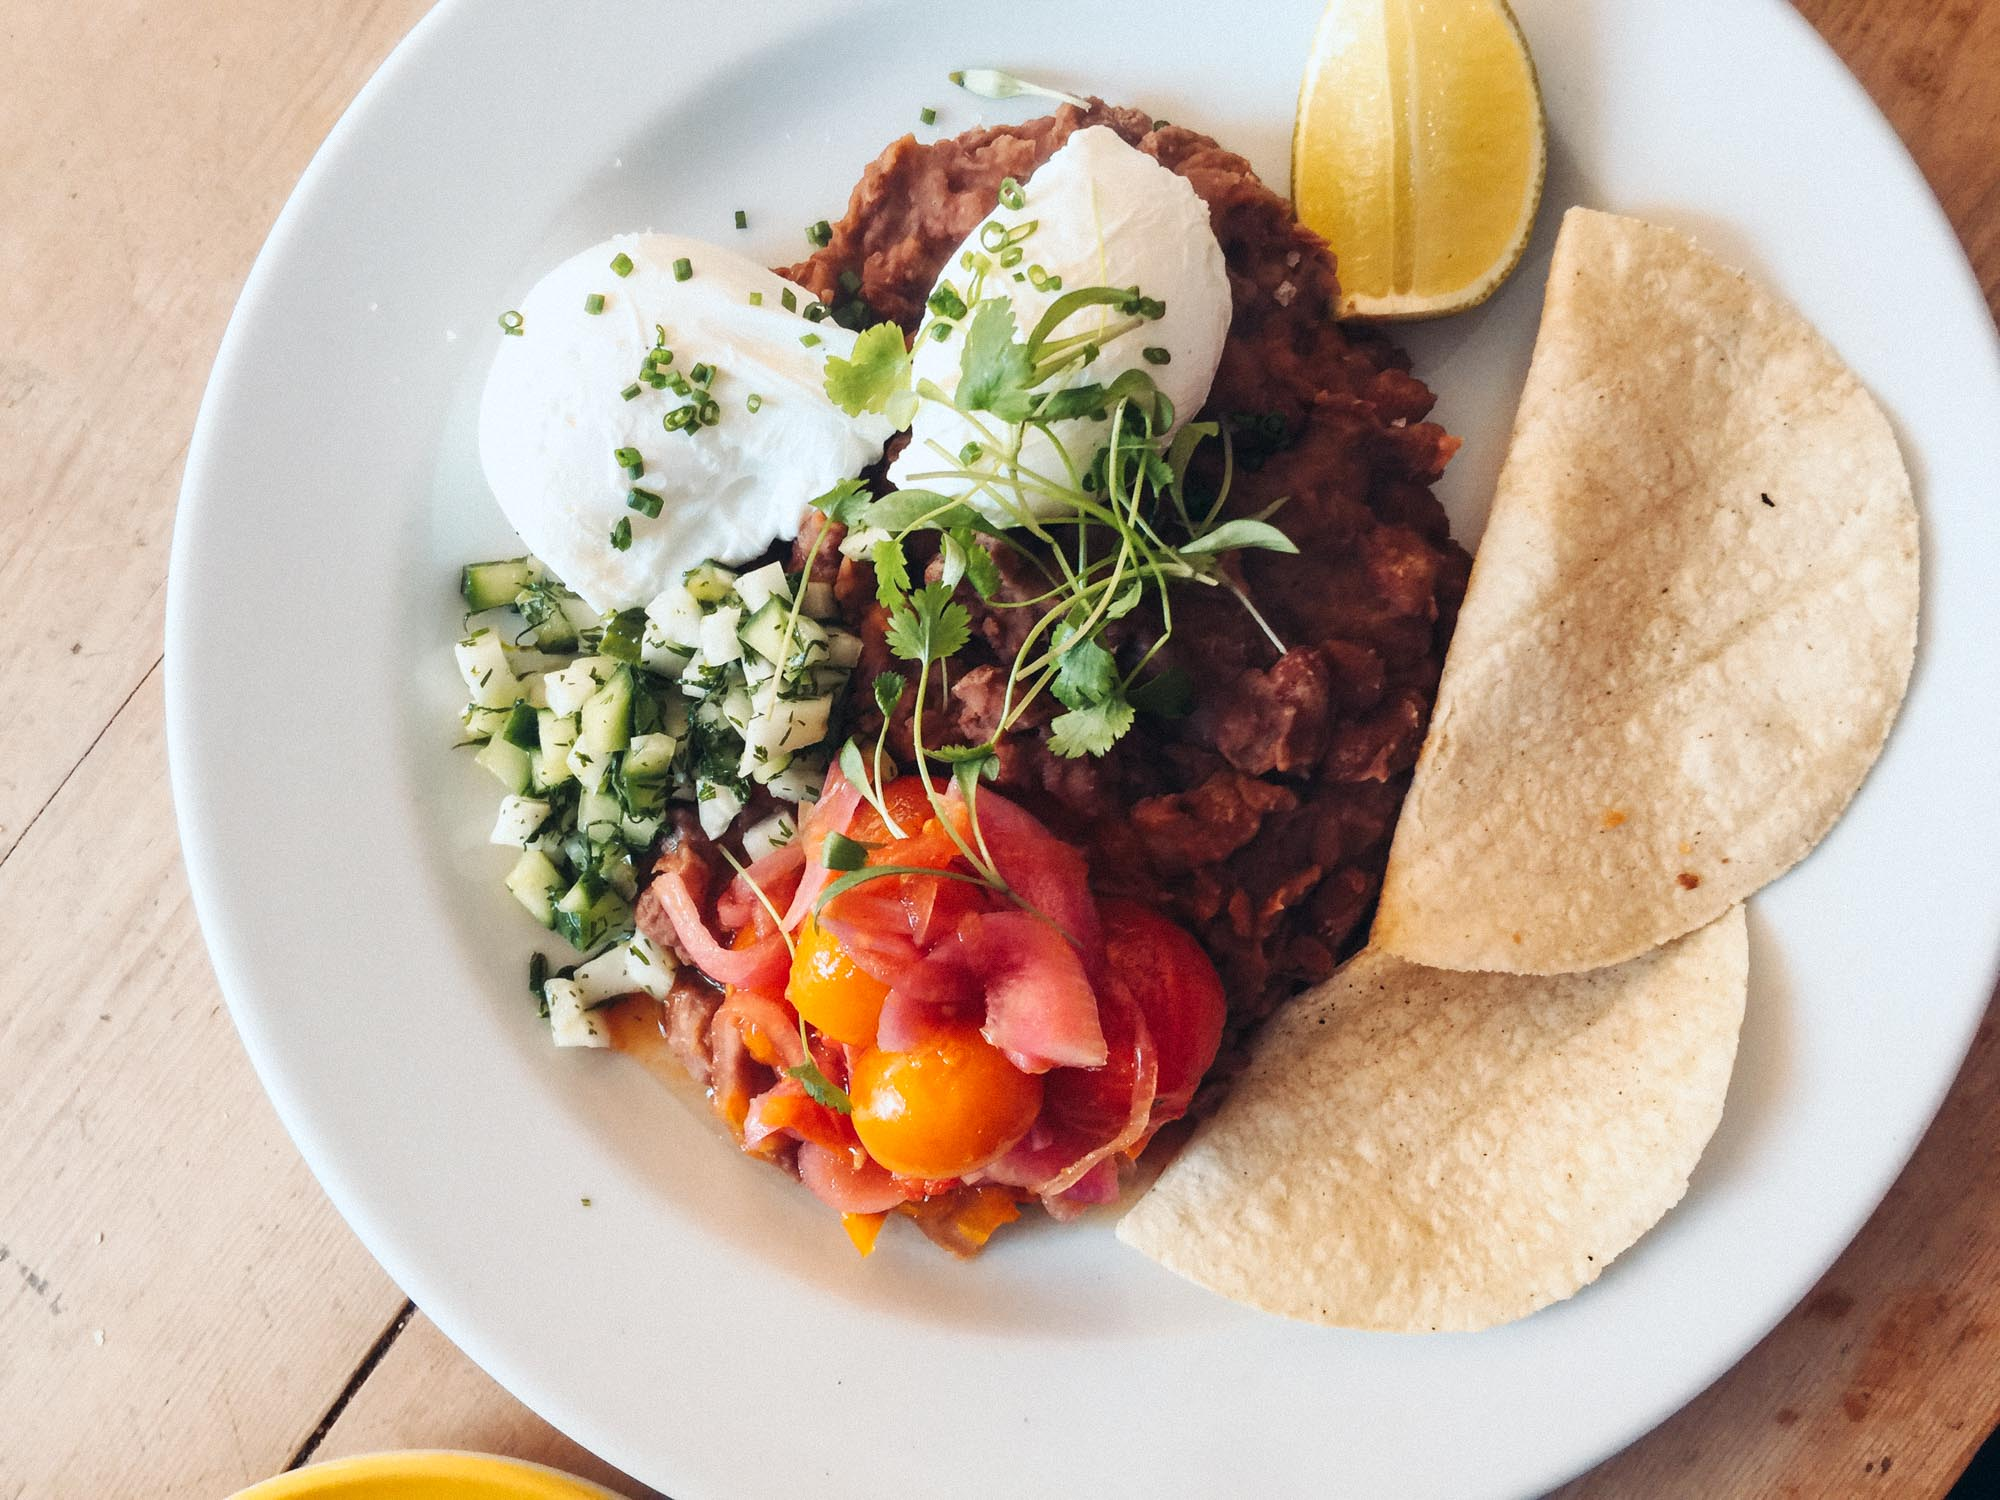 Best brunches in Bristol - Bakers and Co